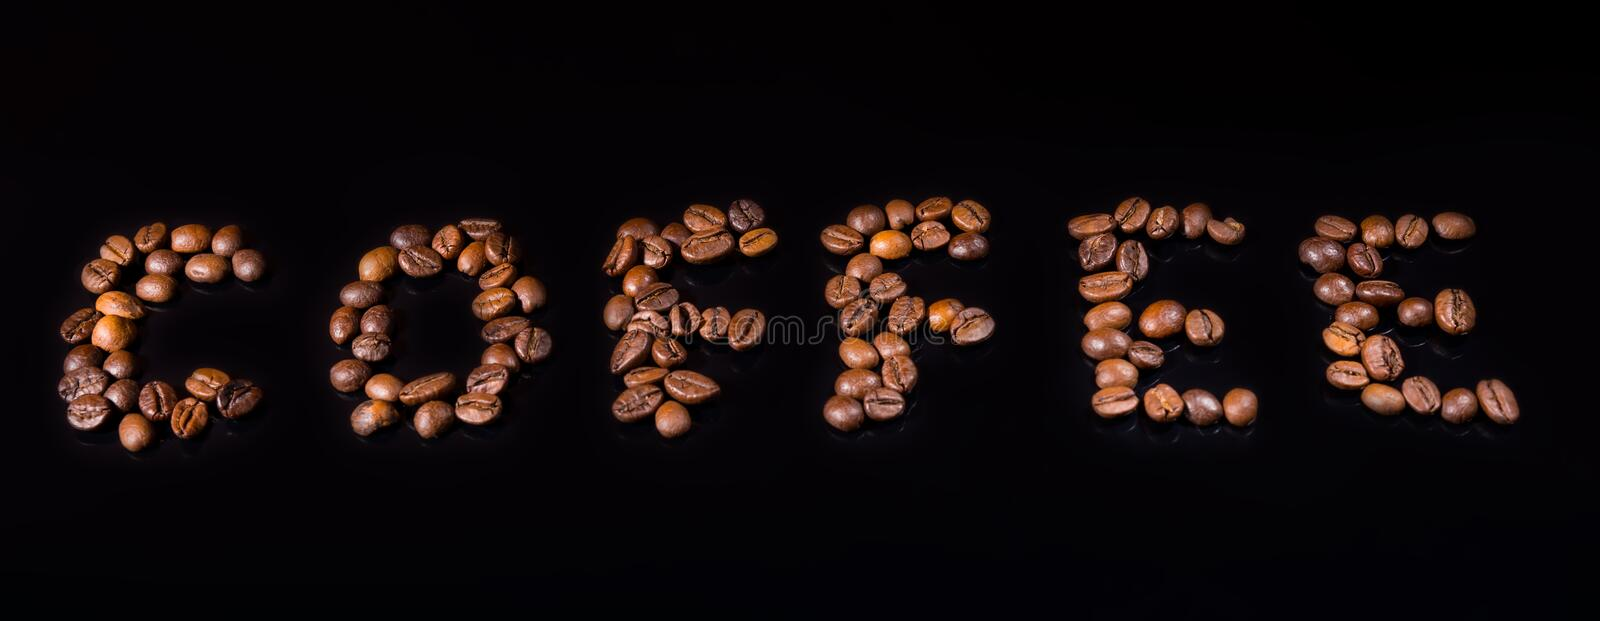 Coffee word made of roasted beans on black stock photography